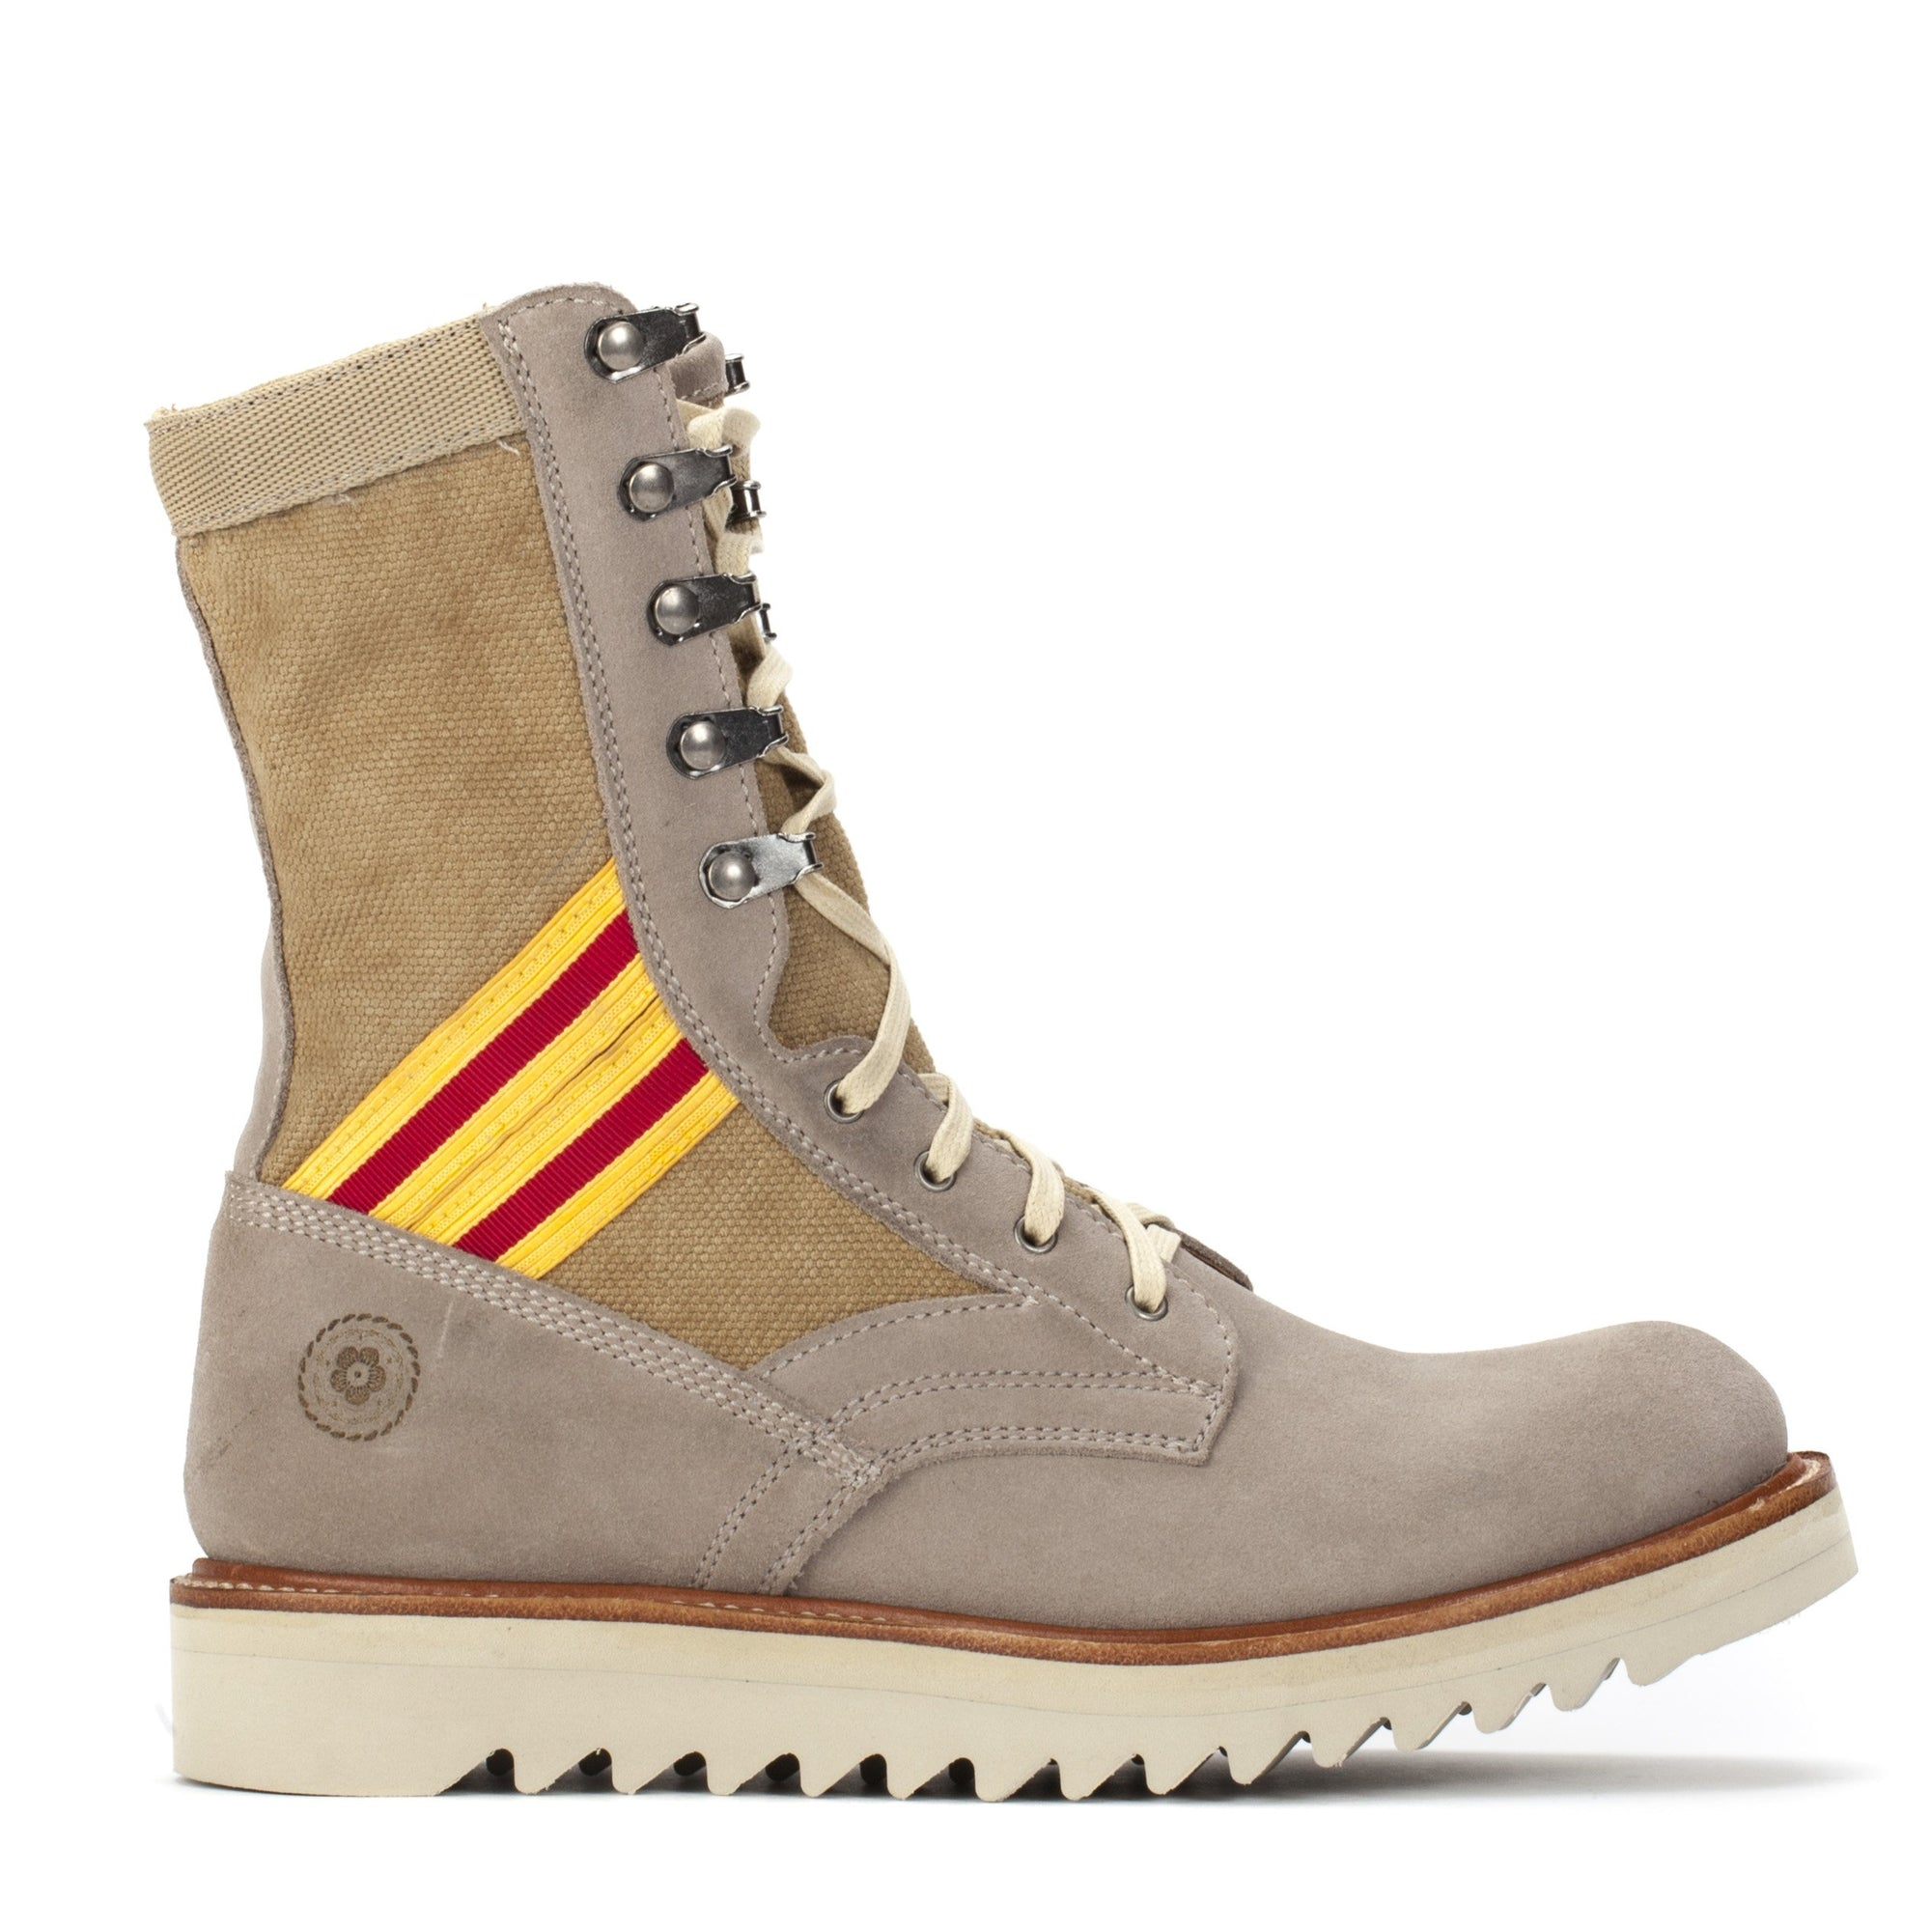 Women's Current Issue Sand Scarlett & Gold Boots - Ranch Road Boots™- Outer Side View